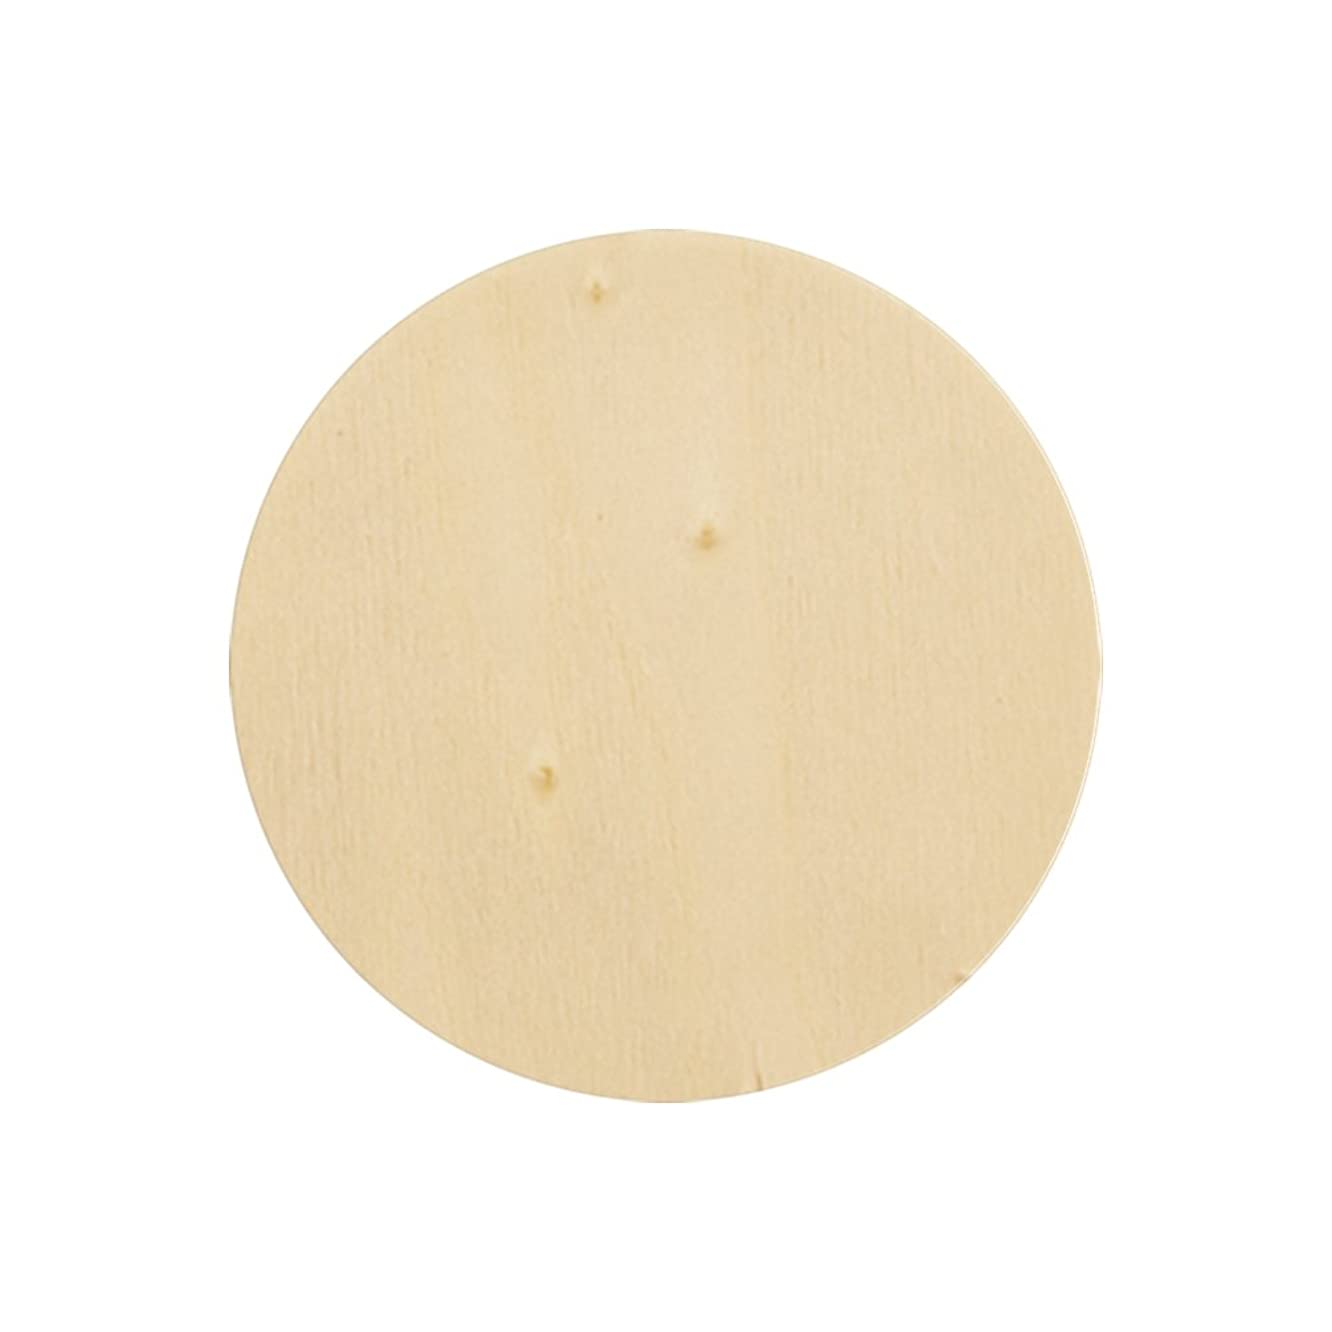 Craftparts Direct Natural Unfinished Round Wood Circle Cutout 10 Inch - Bag of 10